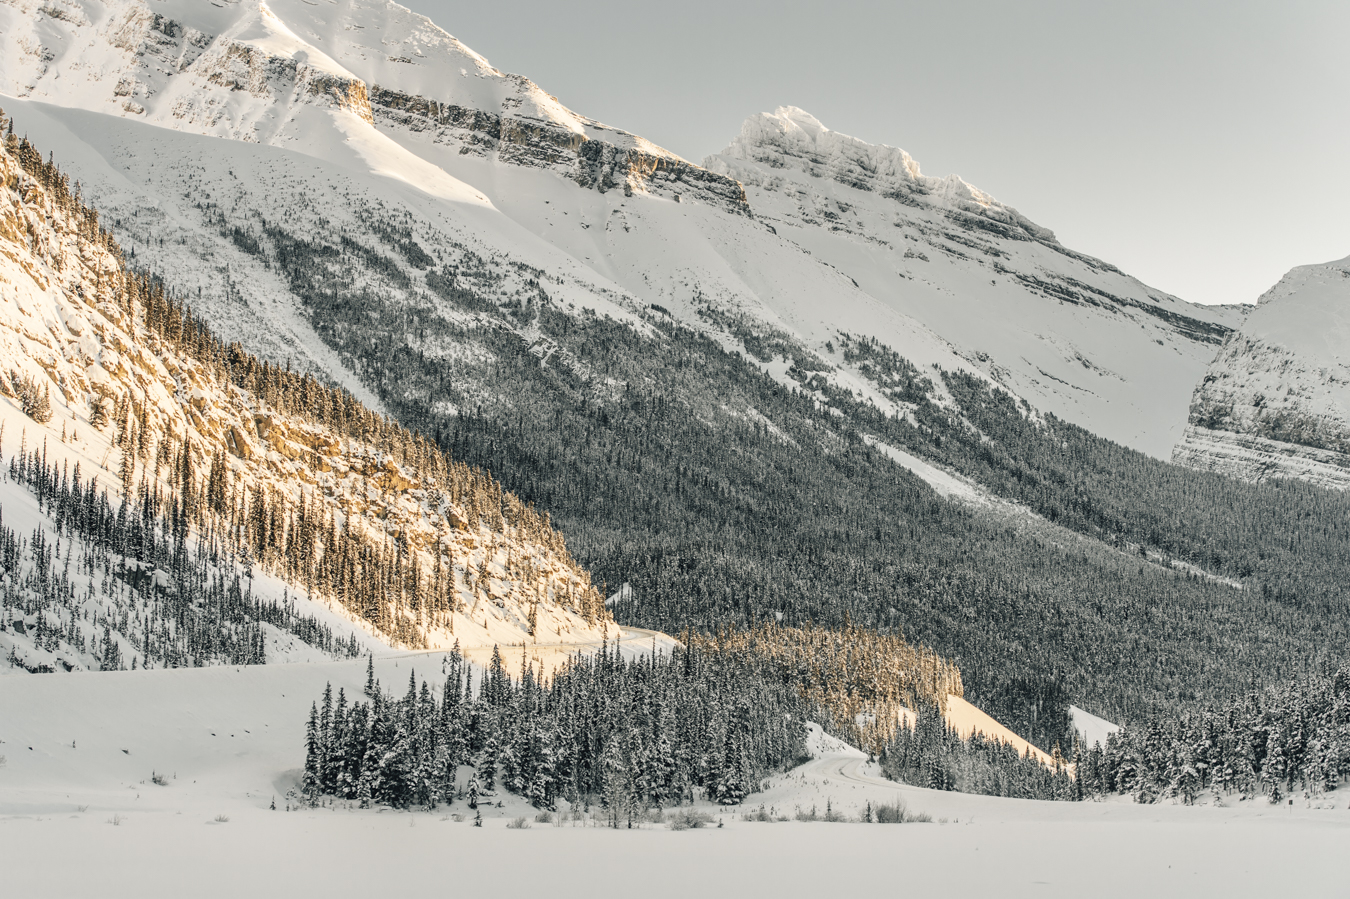 icefields-parkway-christian-frumolt-fotografie_web_small-127